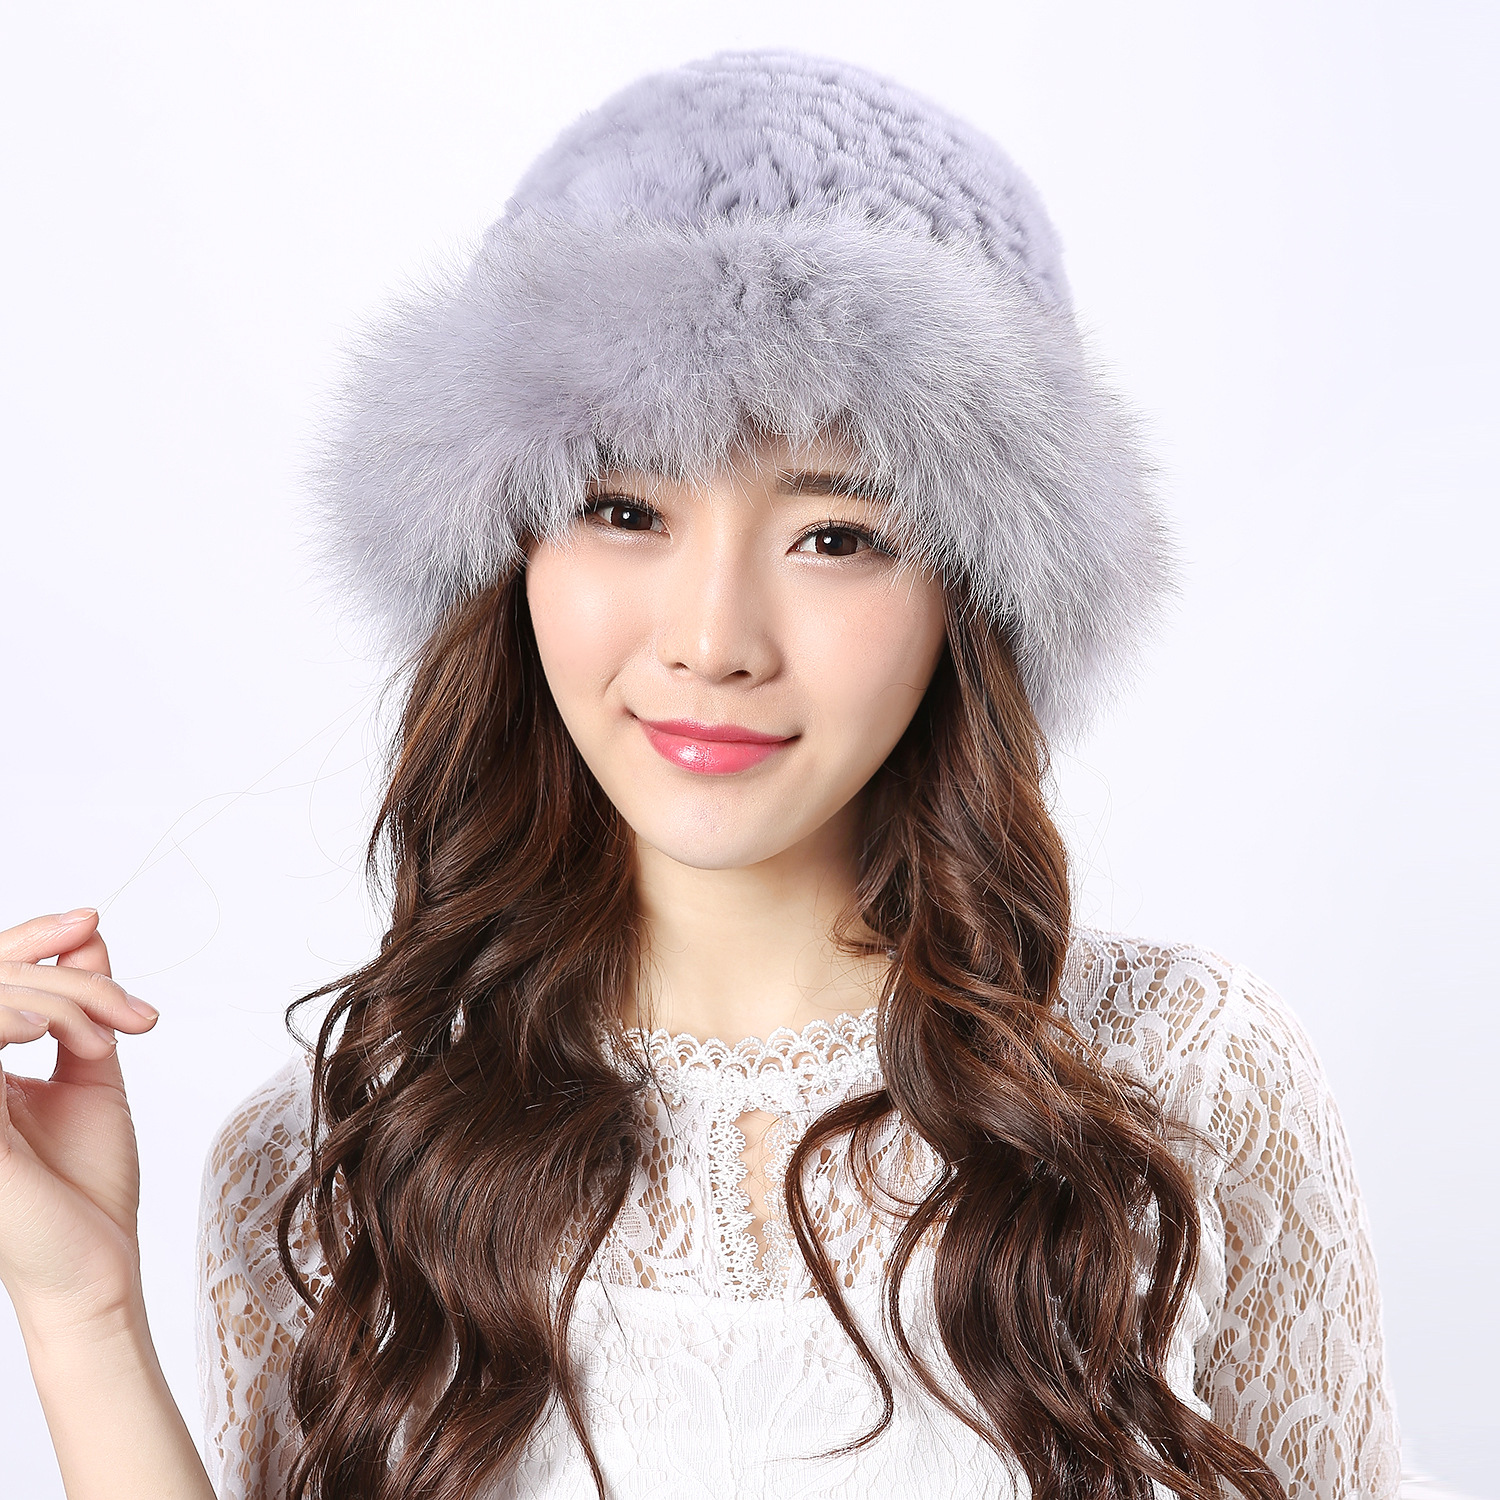 17 new autumn and winter fur of Rex rabbit hair Princess Hat Lady Korean fashion warm color thick ski cap princess hat skullies new winter warm hat wool leather hat rabbit hair hat fashion cap fpc018